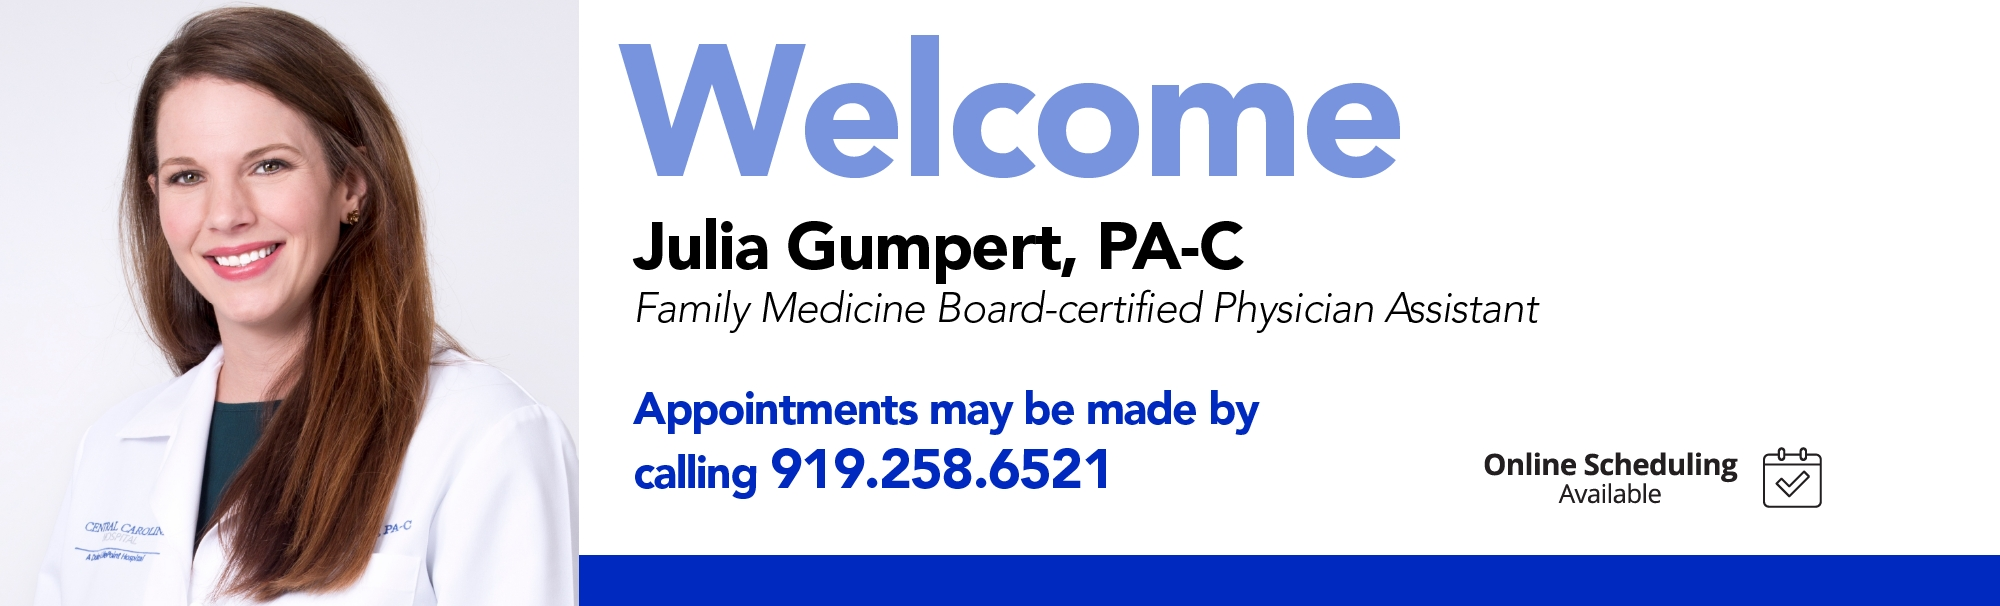 Welcome Julia Gumpert, PA